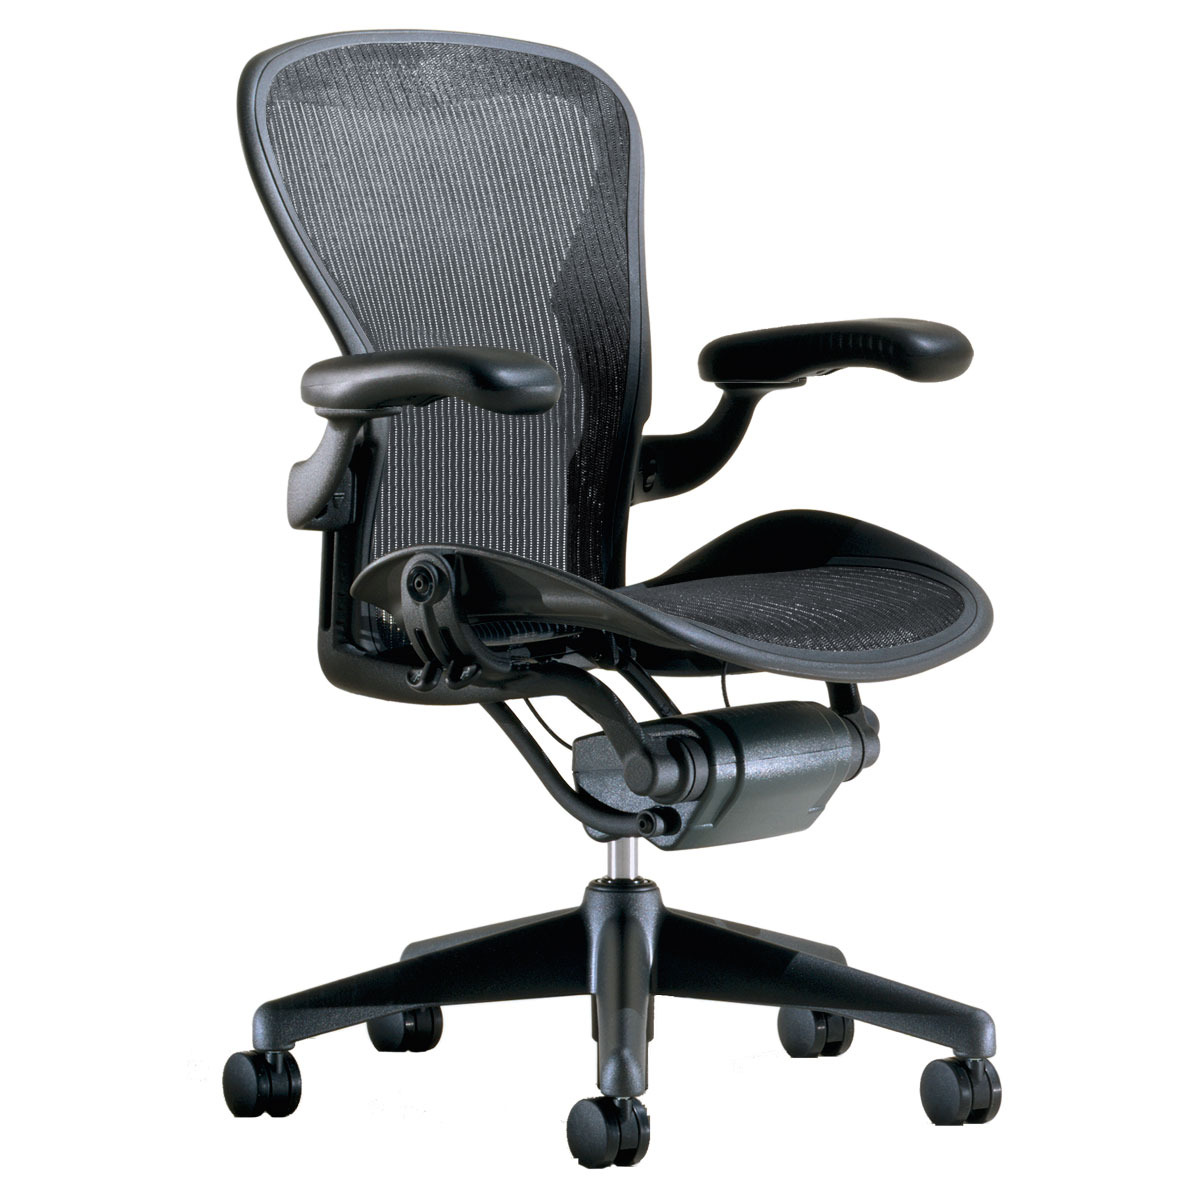 Comfort in Ergonomic Chairs